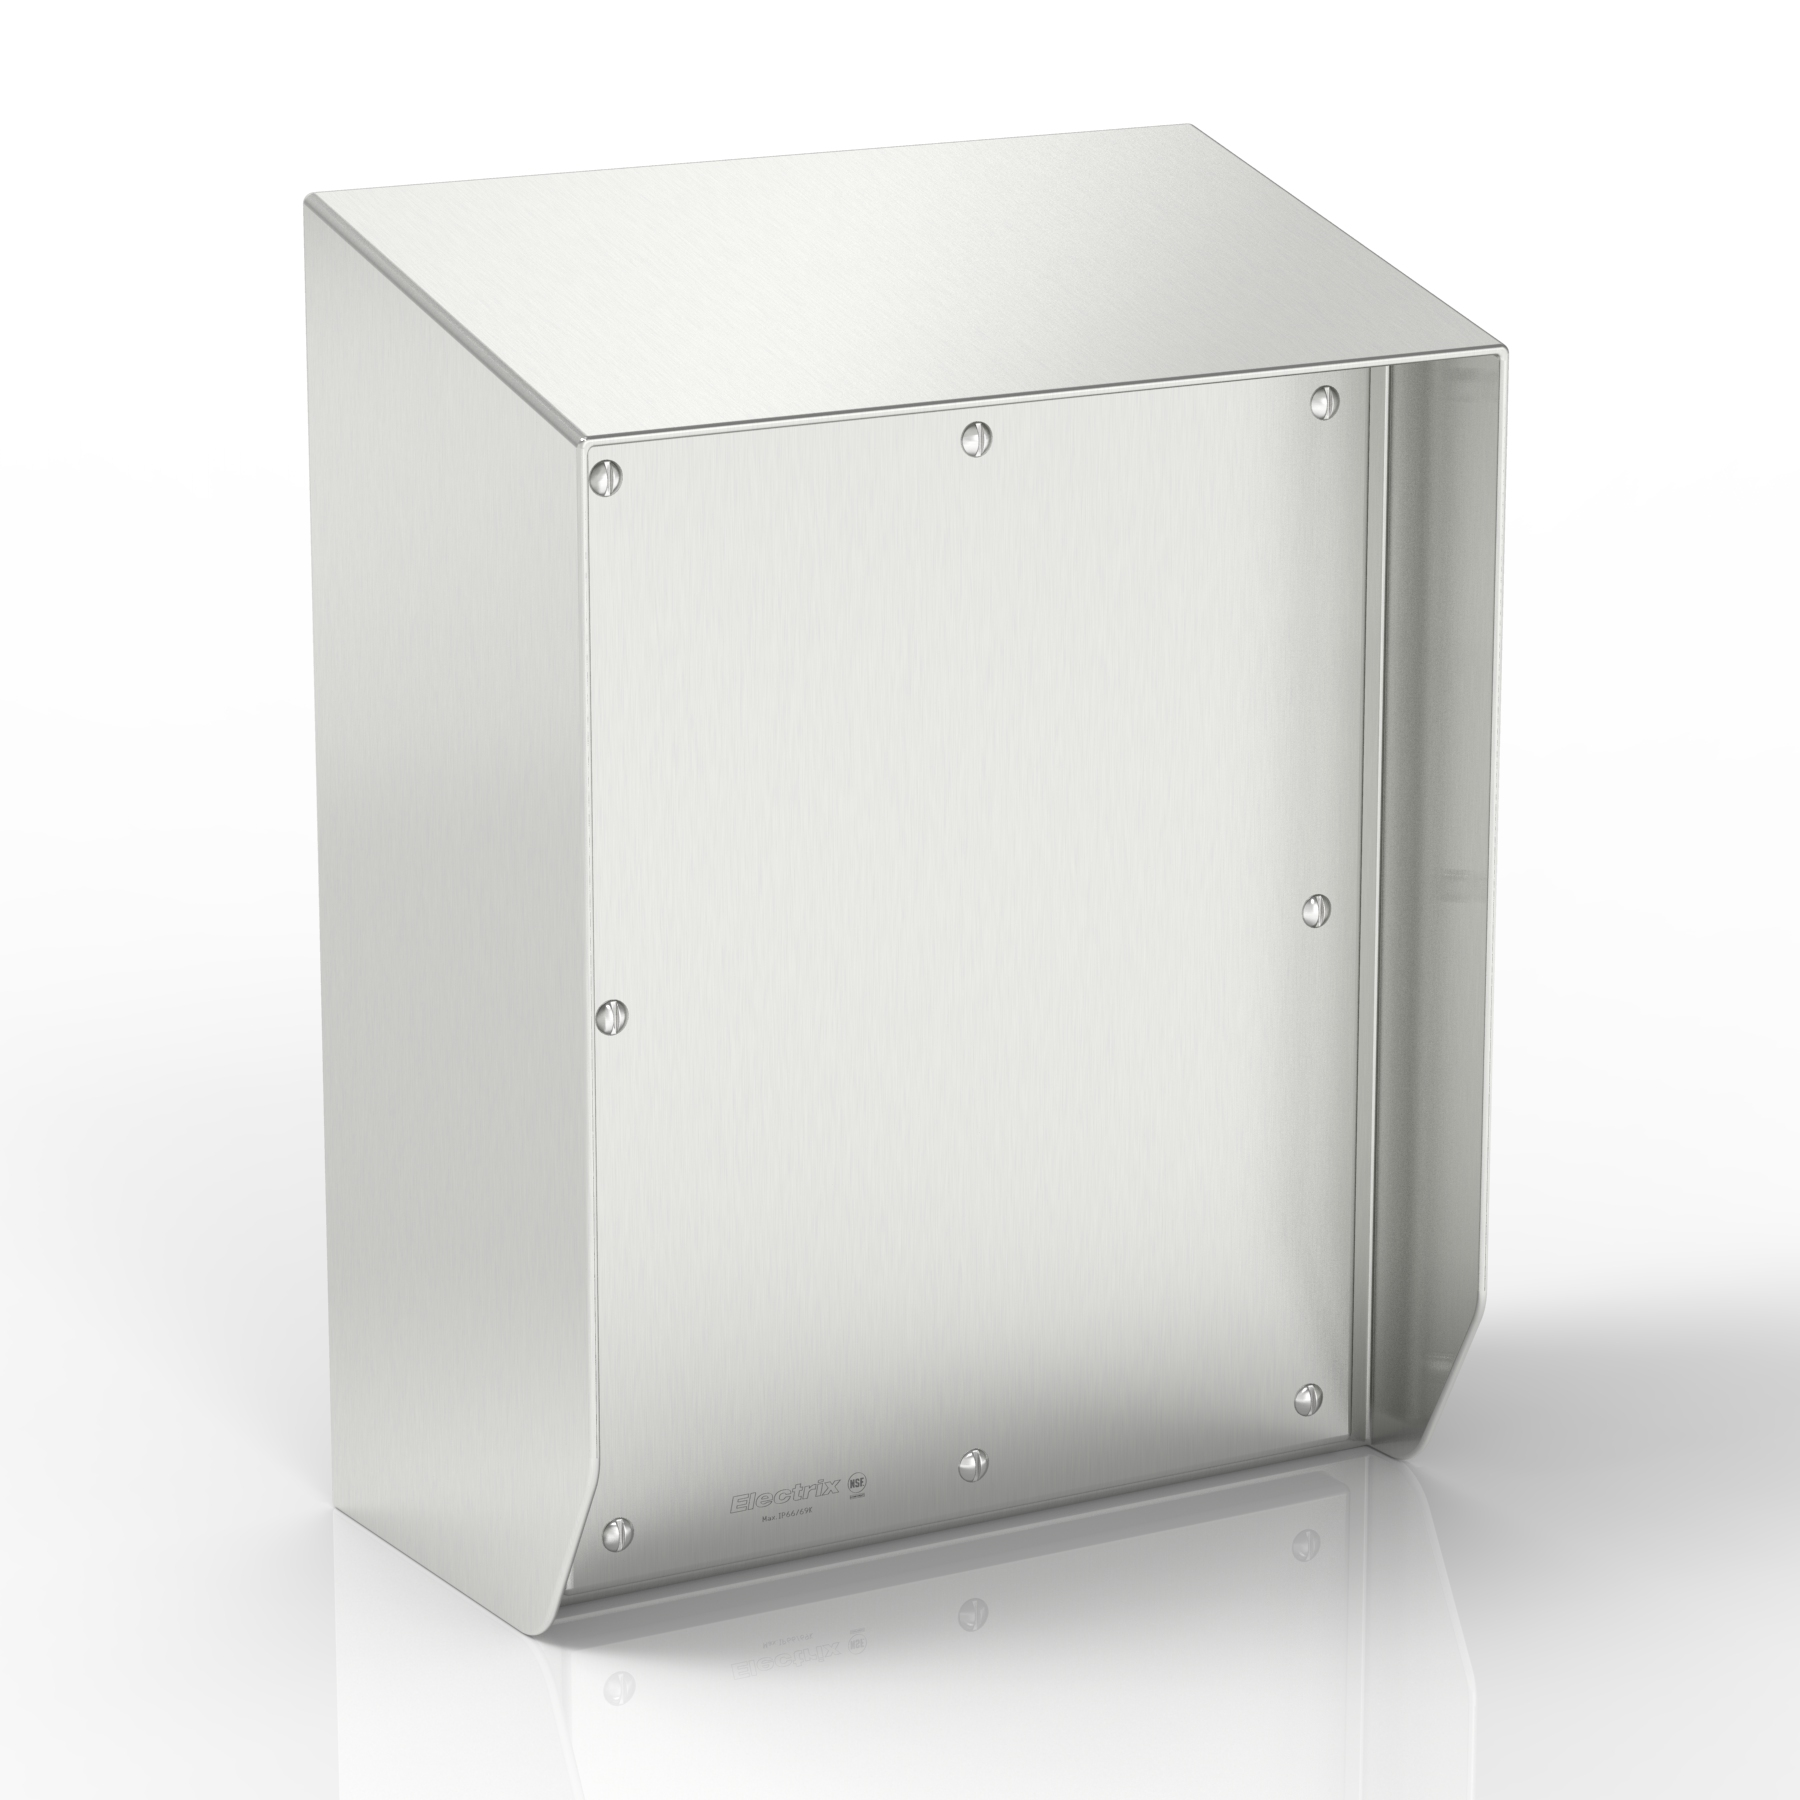 SR15-TCE80-S316 | WASHDOWNPRO IP69K 15° Sloping Roof Terminal & Control Enclosure with Removable Stand-Off Mounting Pillars